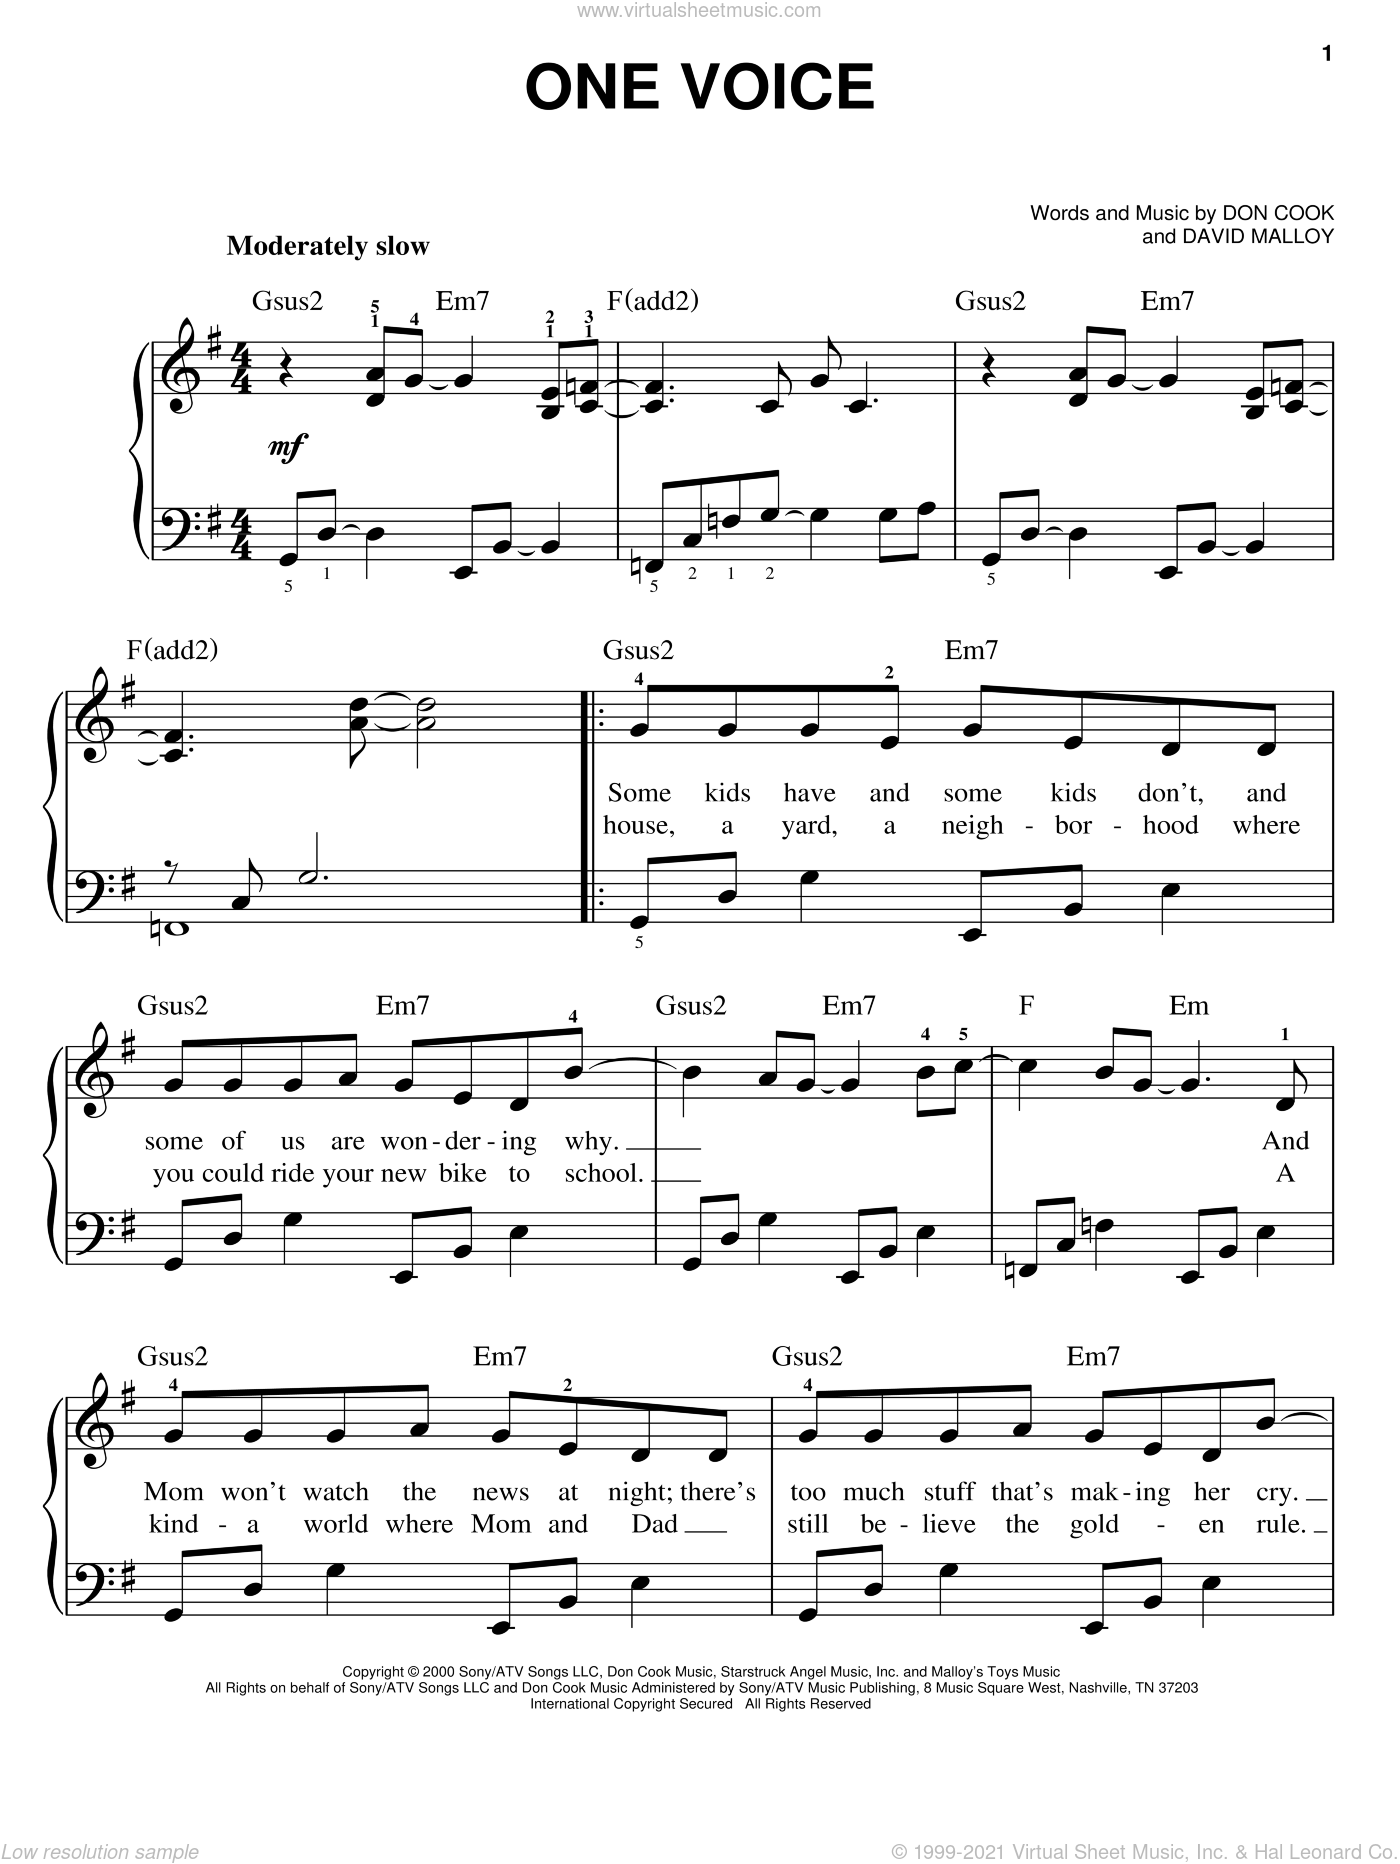 One Voice sheet music for piano solo by Billy Gilman, David Malloy and Don Cook, easy